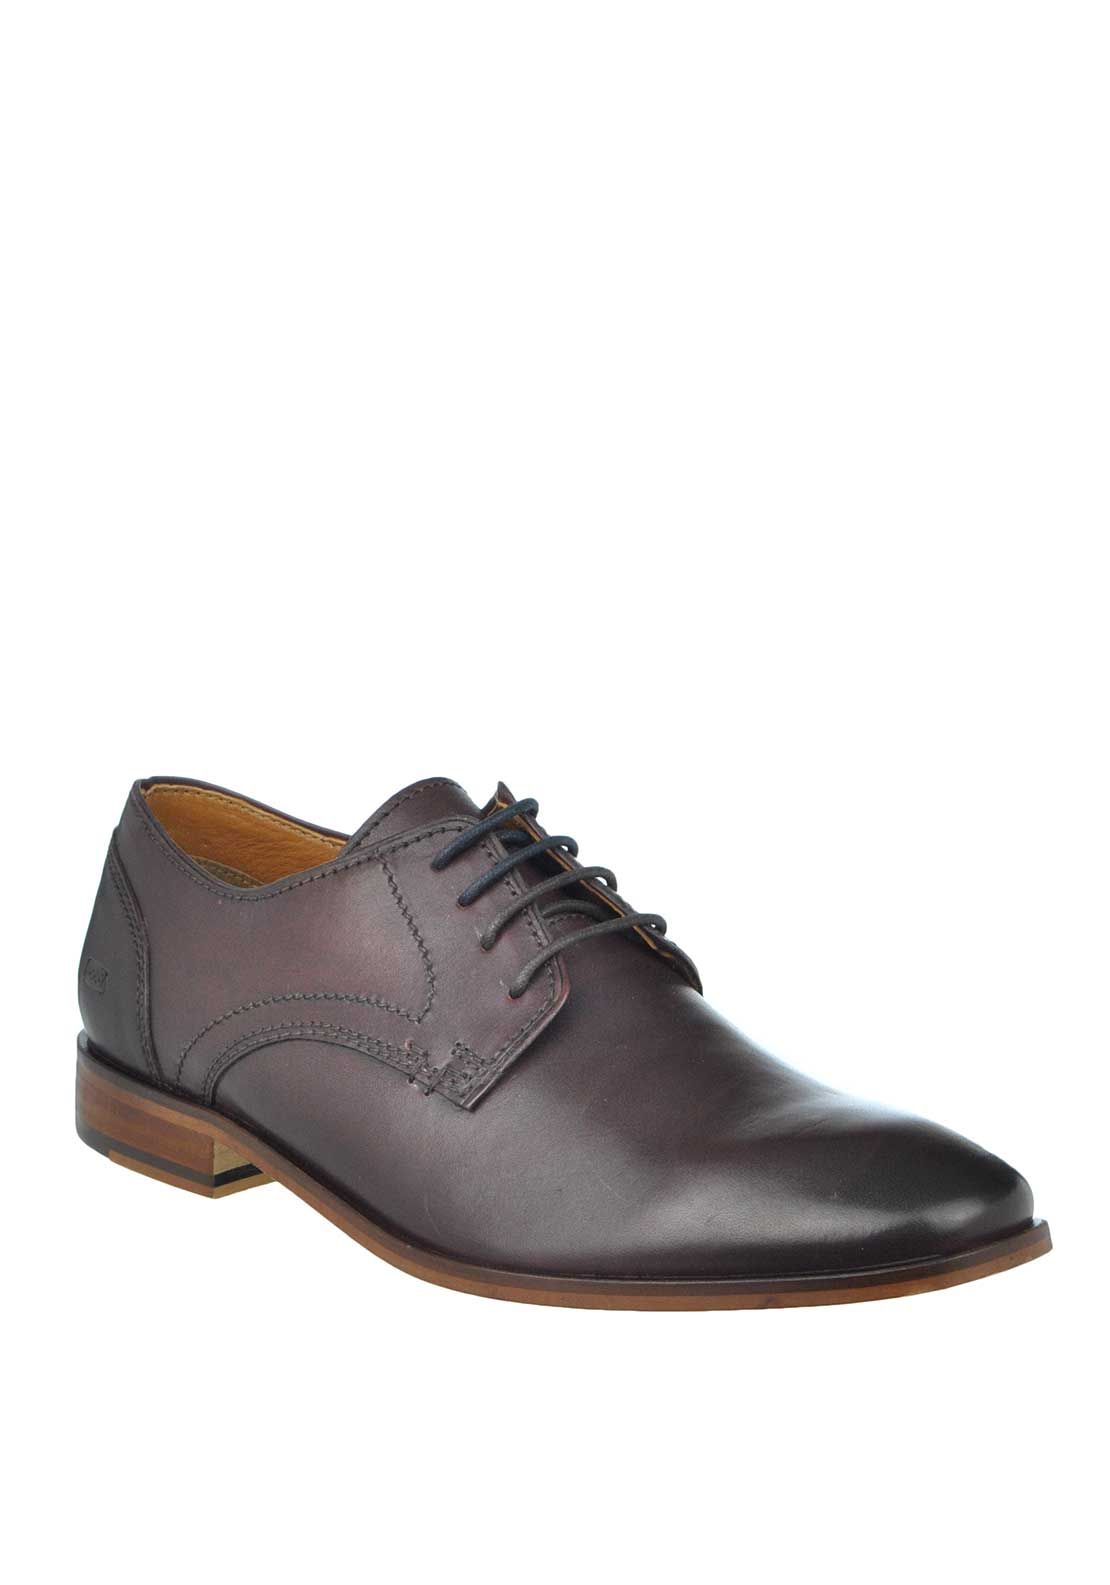 Paul O'Donnell by POD Boston Leather Lace Up Formal Shoes, Bordeaux